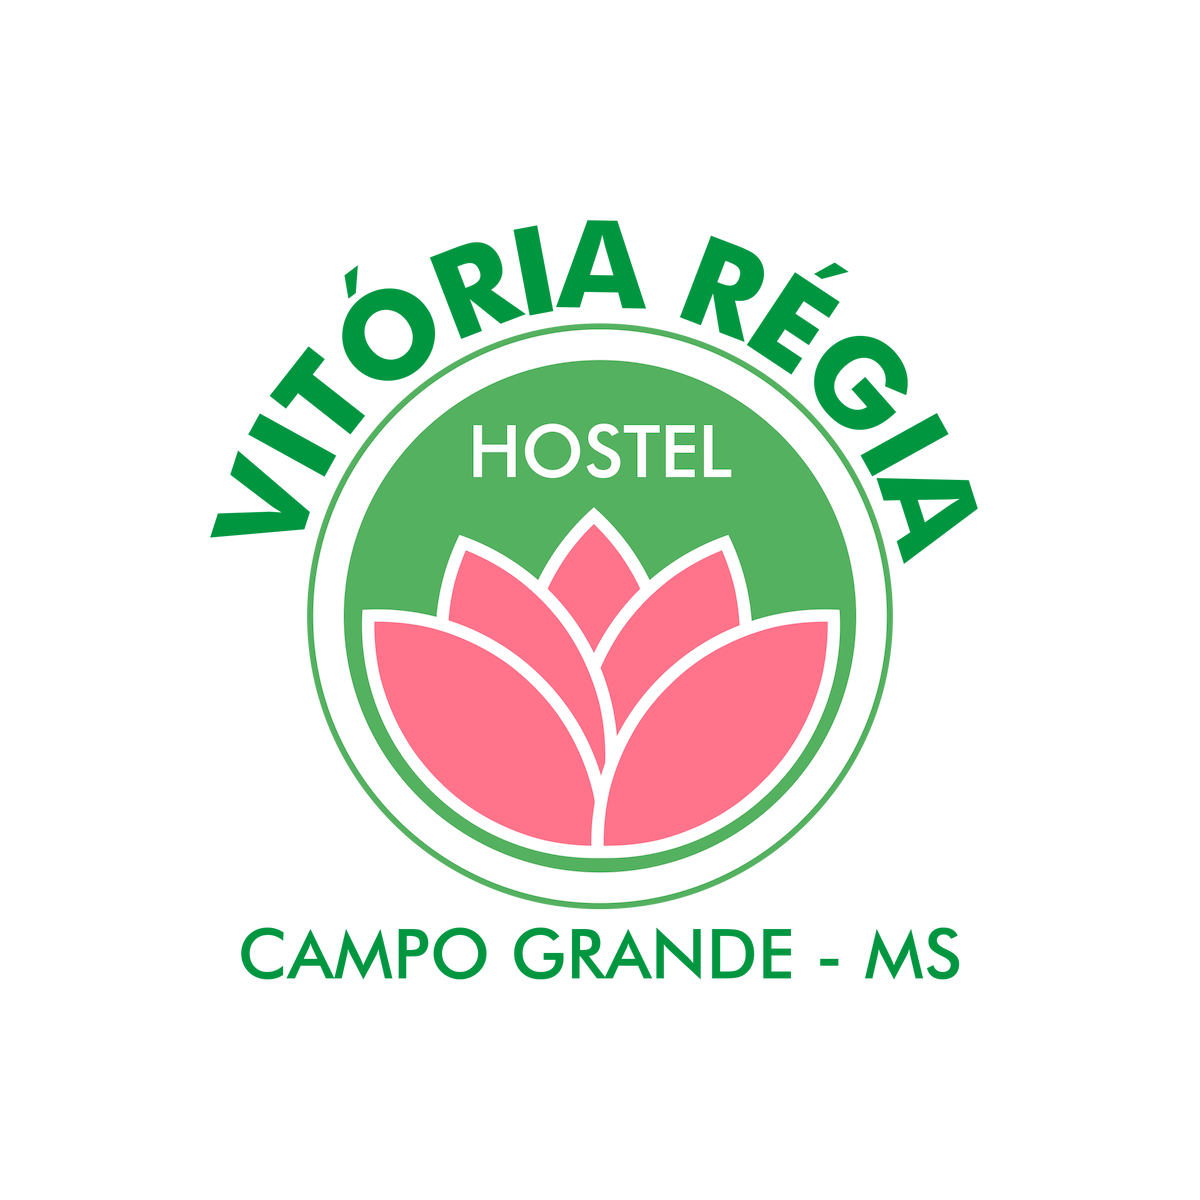 Hostel from Campo Grande